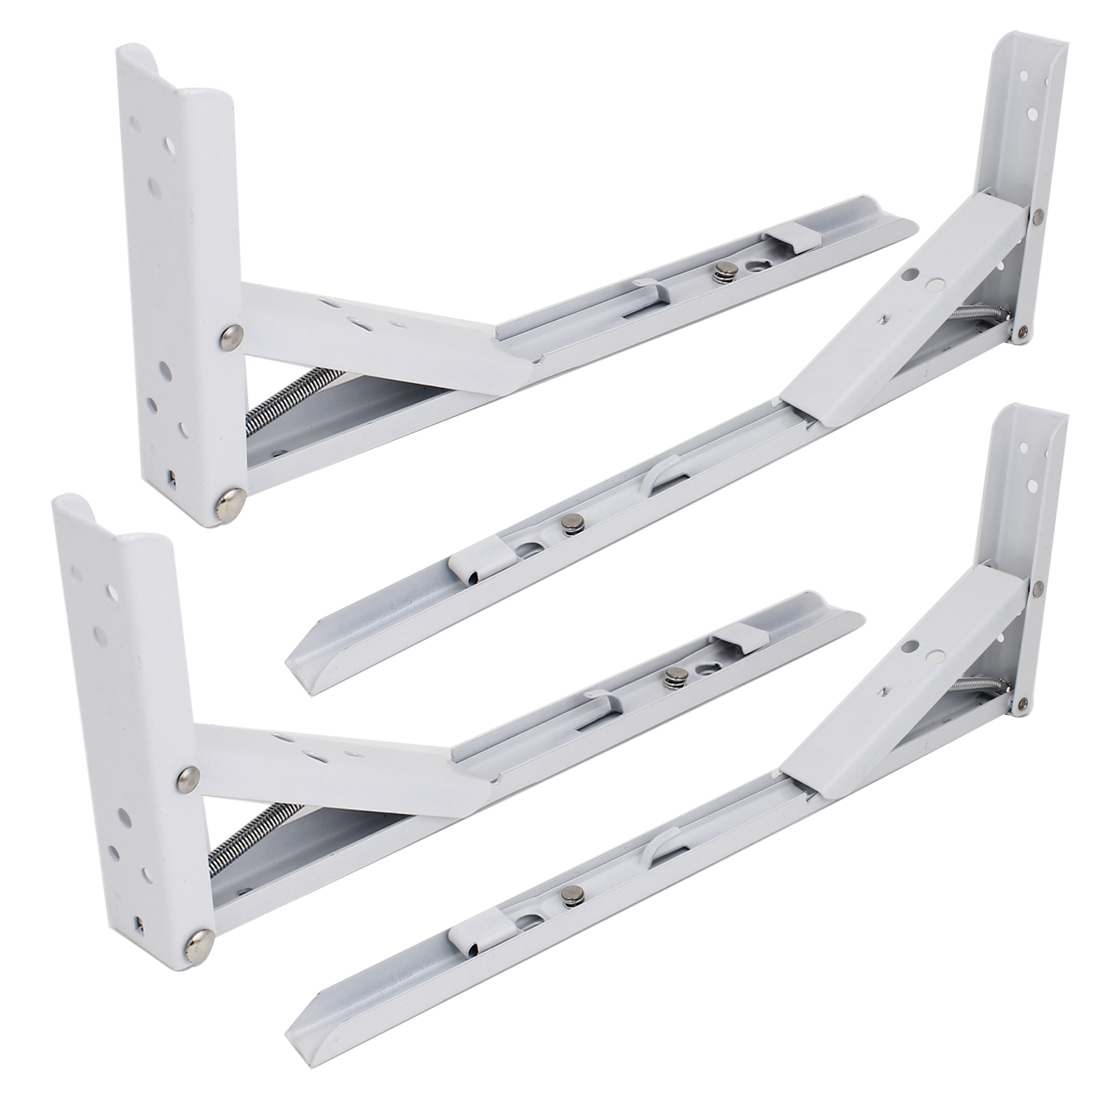 4 Pcs Spring Loaded White Metal Right Angle Folding Shelf Brackets 35cmx13cm